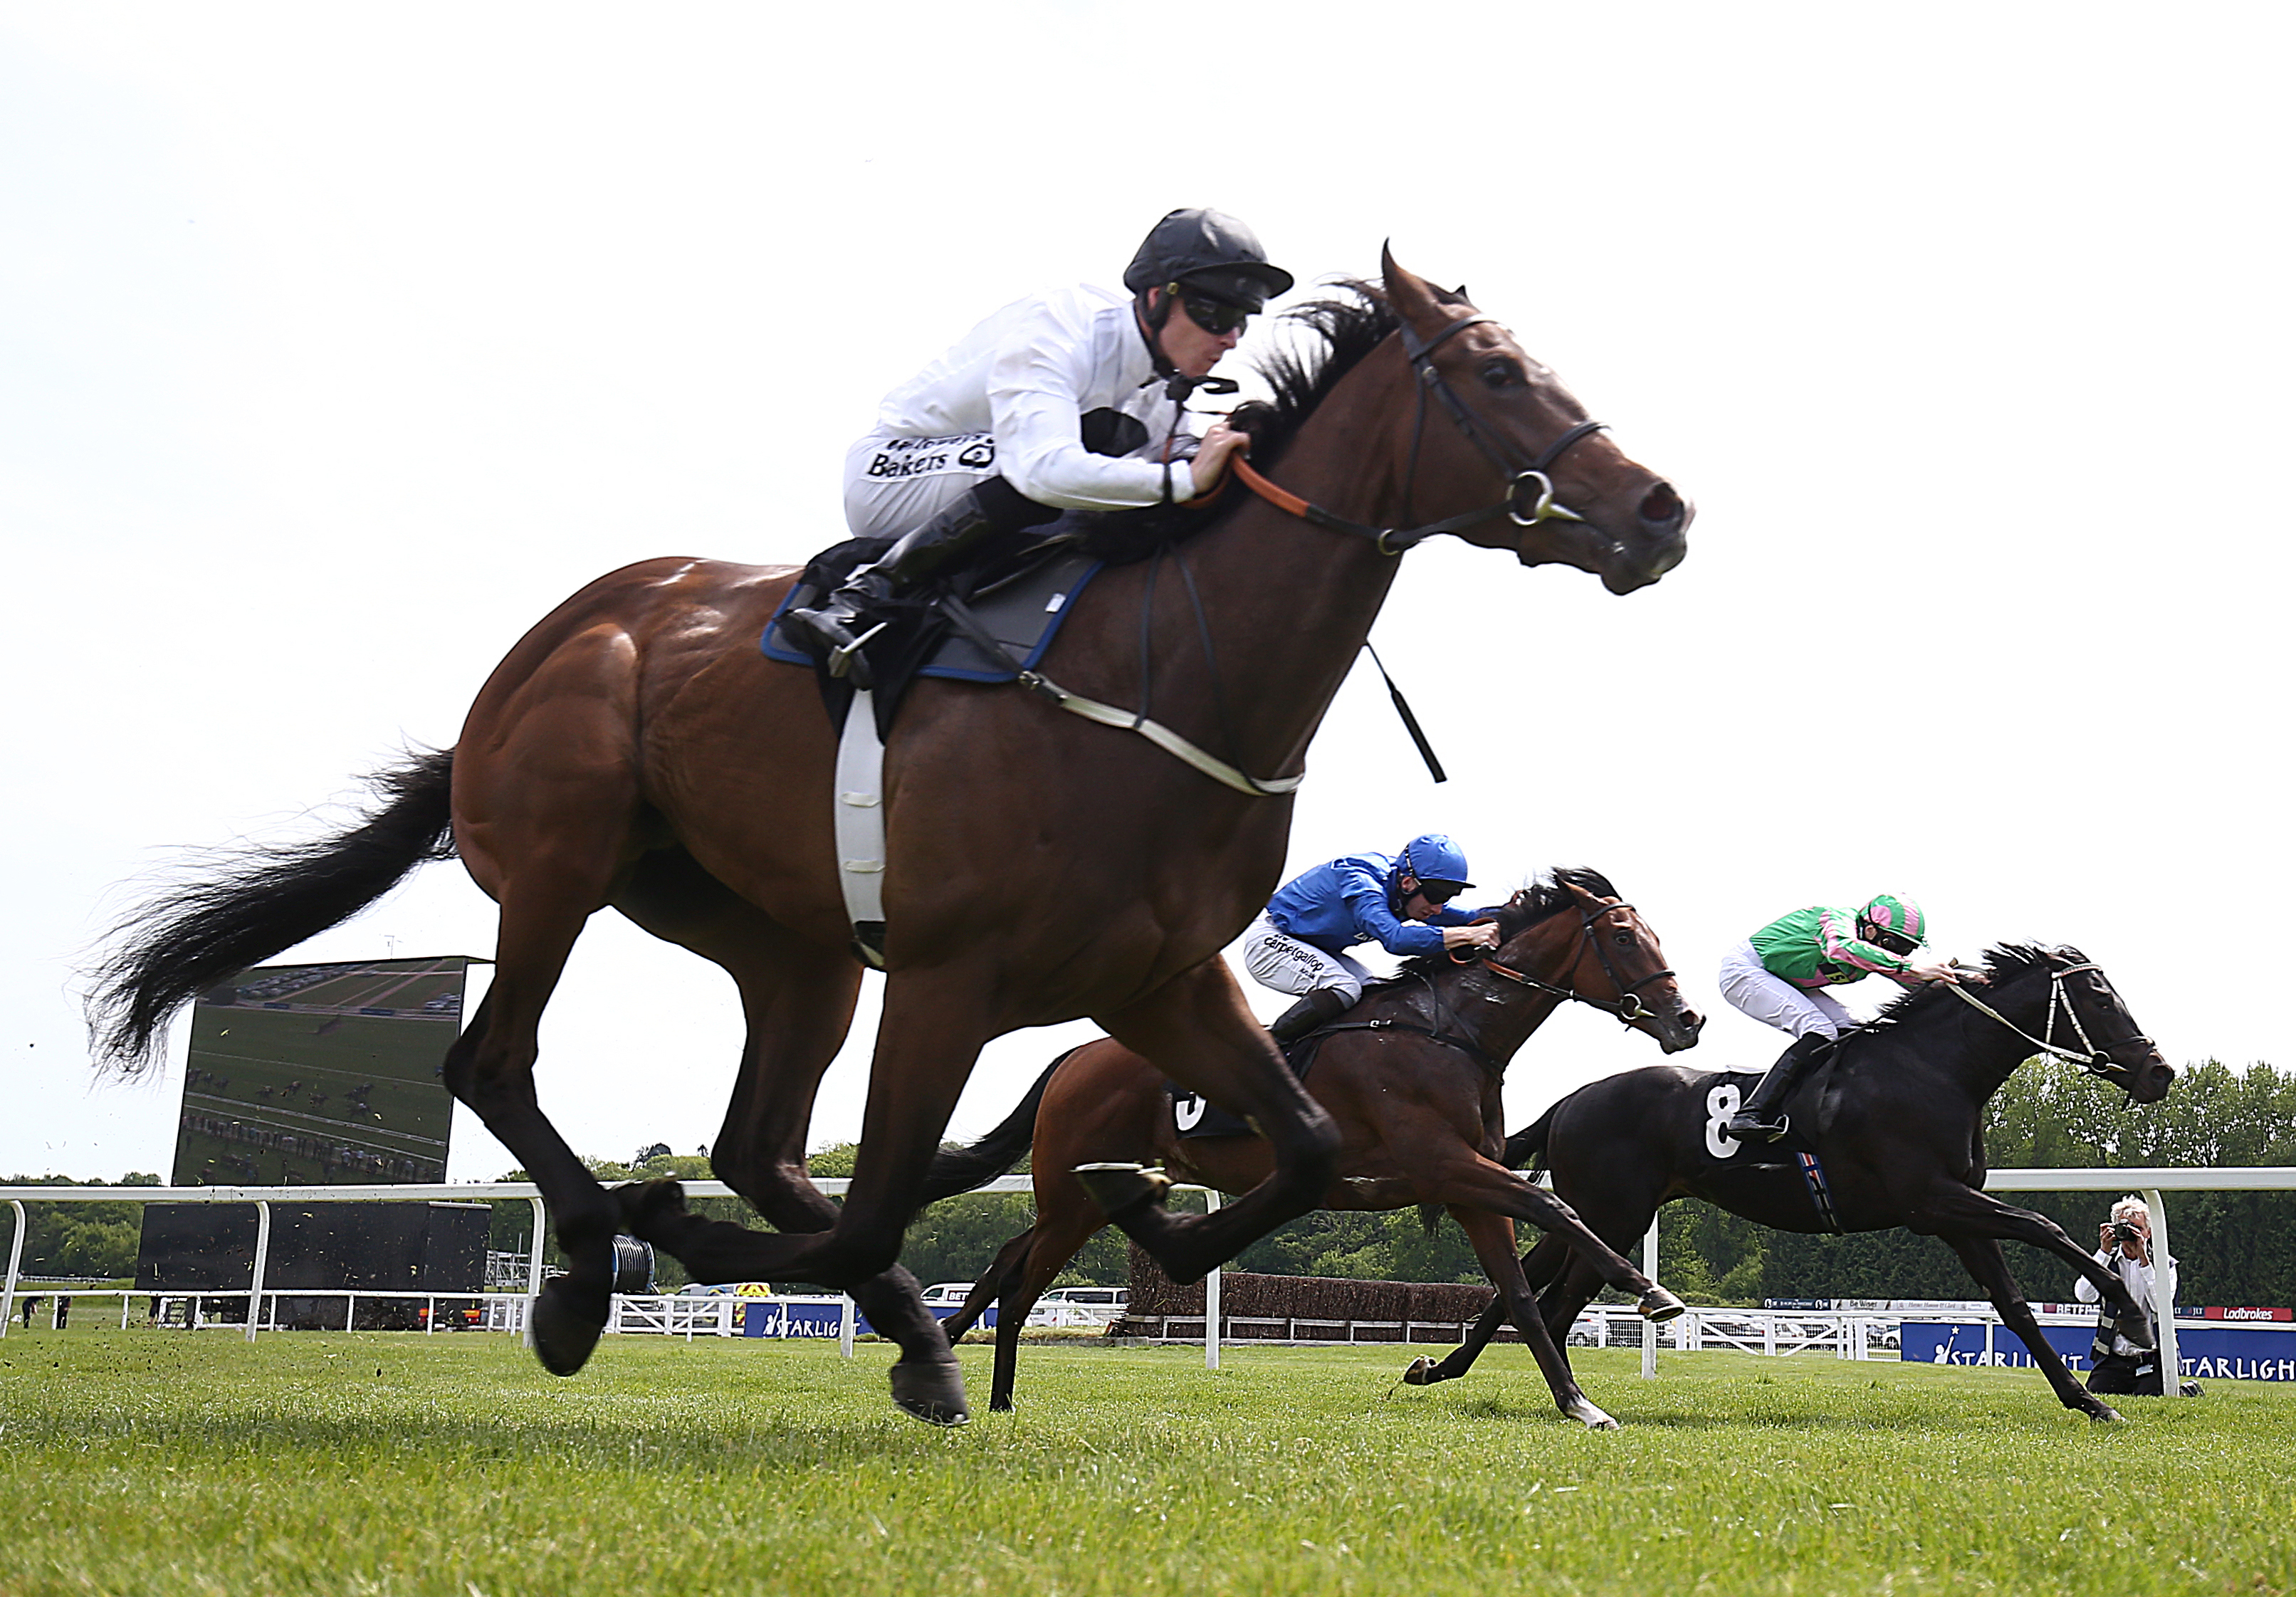 Advertise on his way to making a winning debut at Newbury will bid to make a successful return in the Qipco 2000 Guineas at Newmarket (